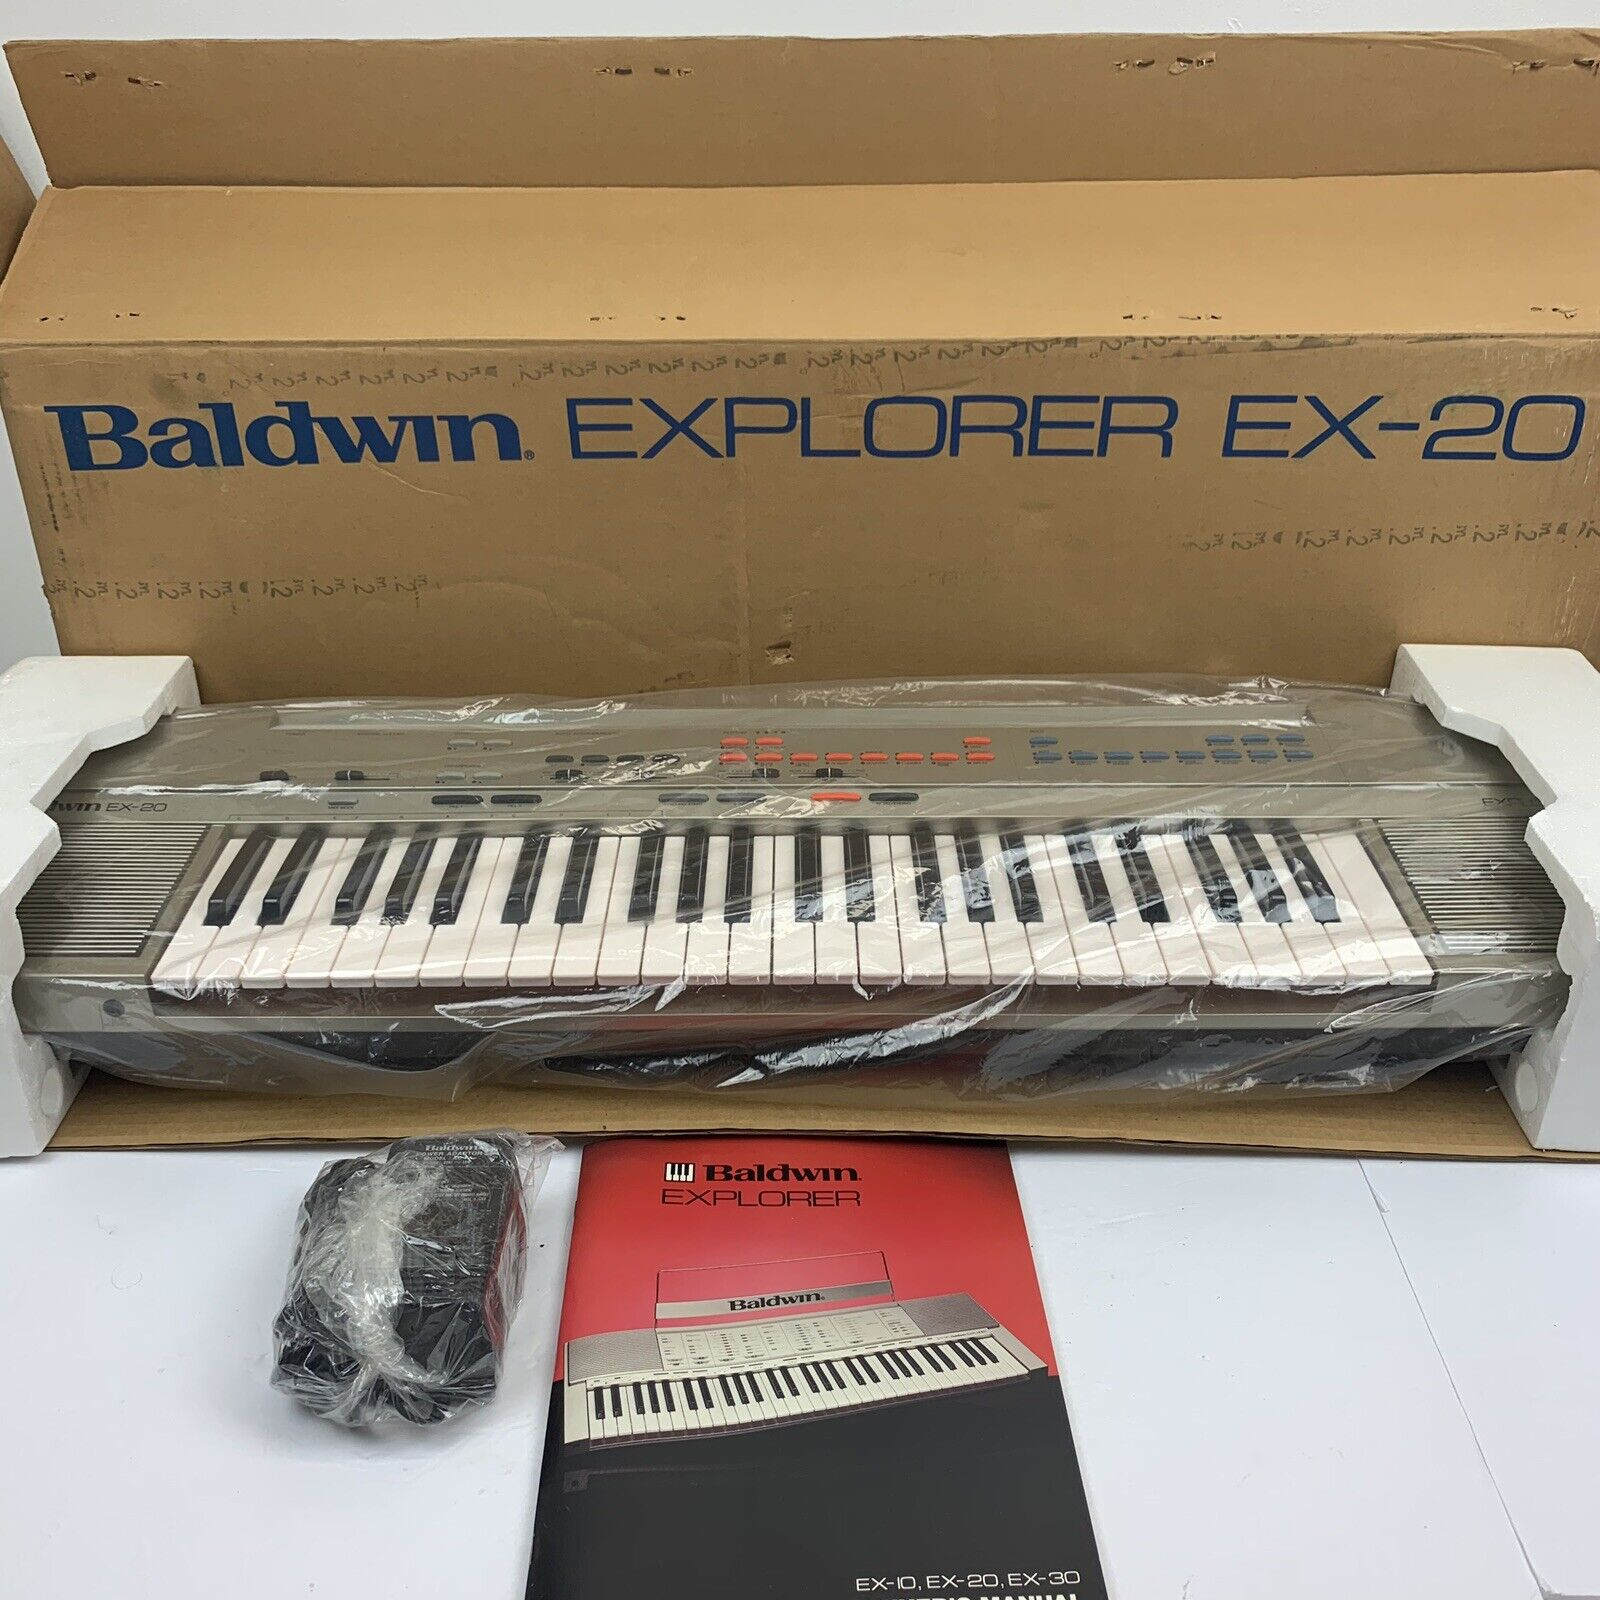 NOS Vintage Baldwin Explorer EX-20 Keyboard SyntheGrößer Klavier Neue Marke in Box